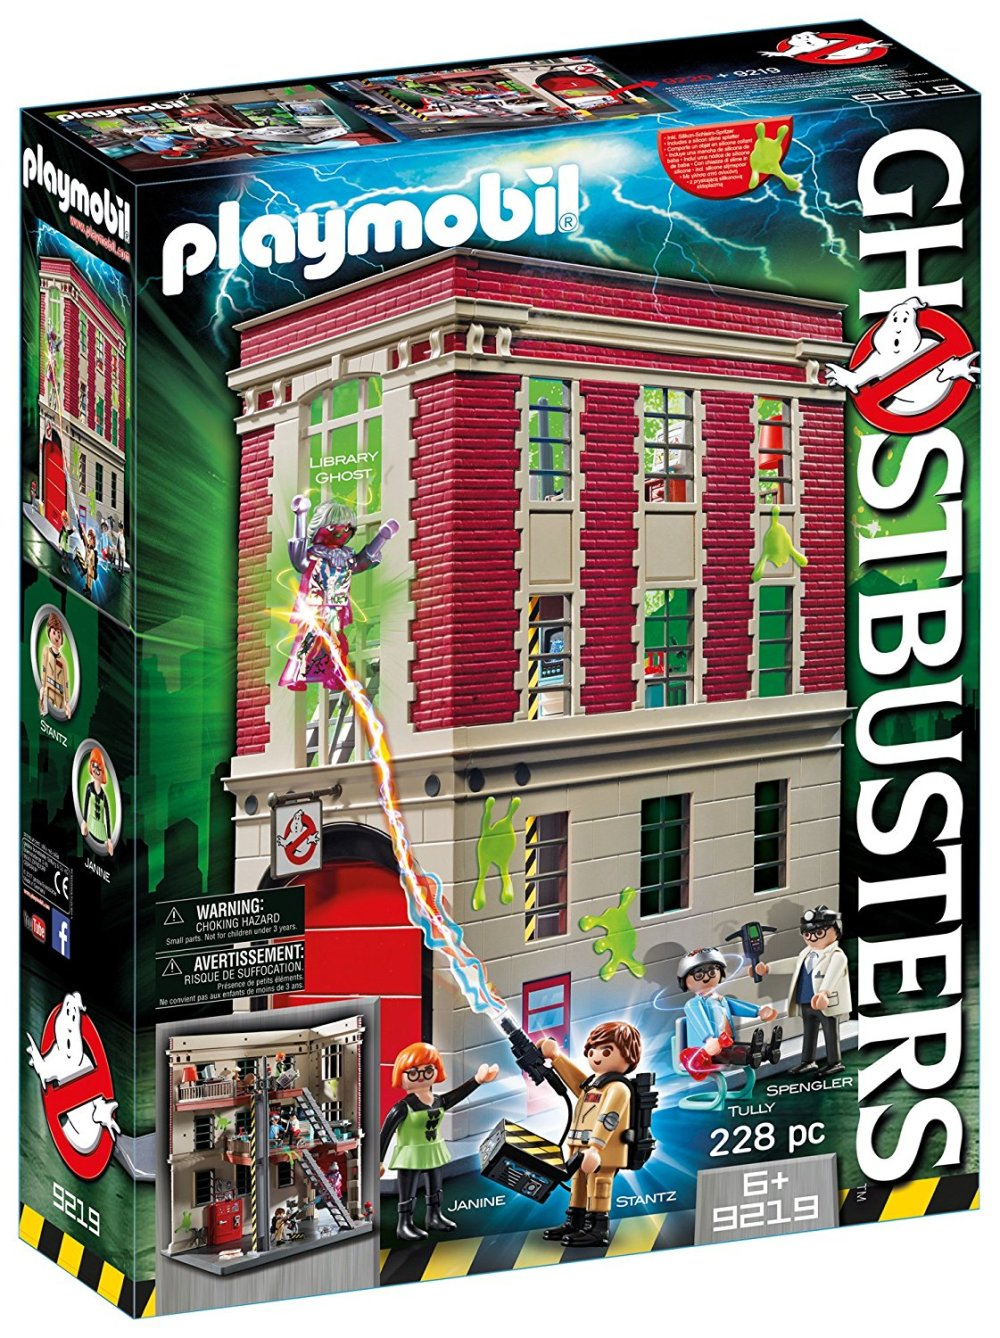 caserma ghostbusters amazon playmobil compra hot